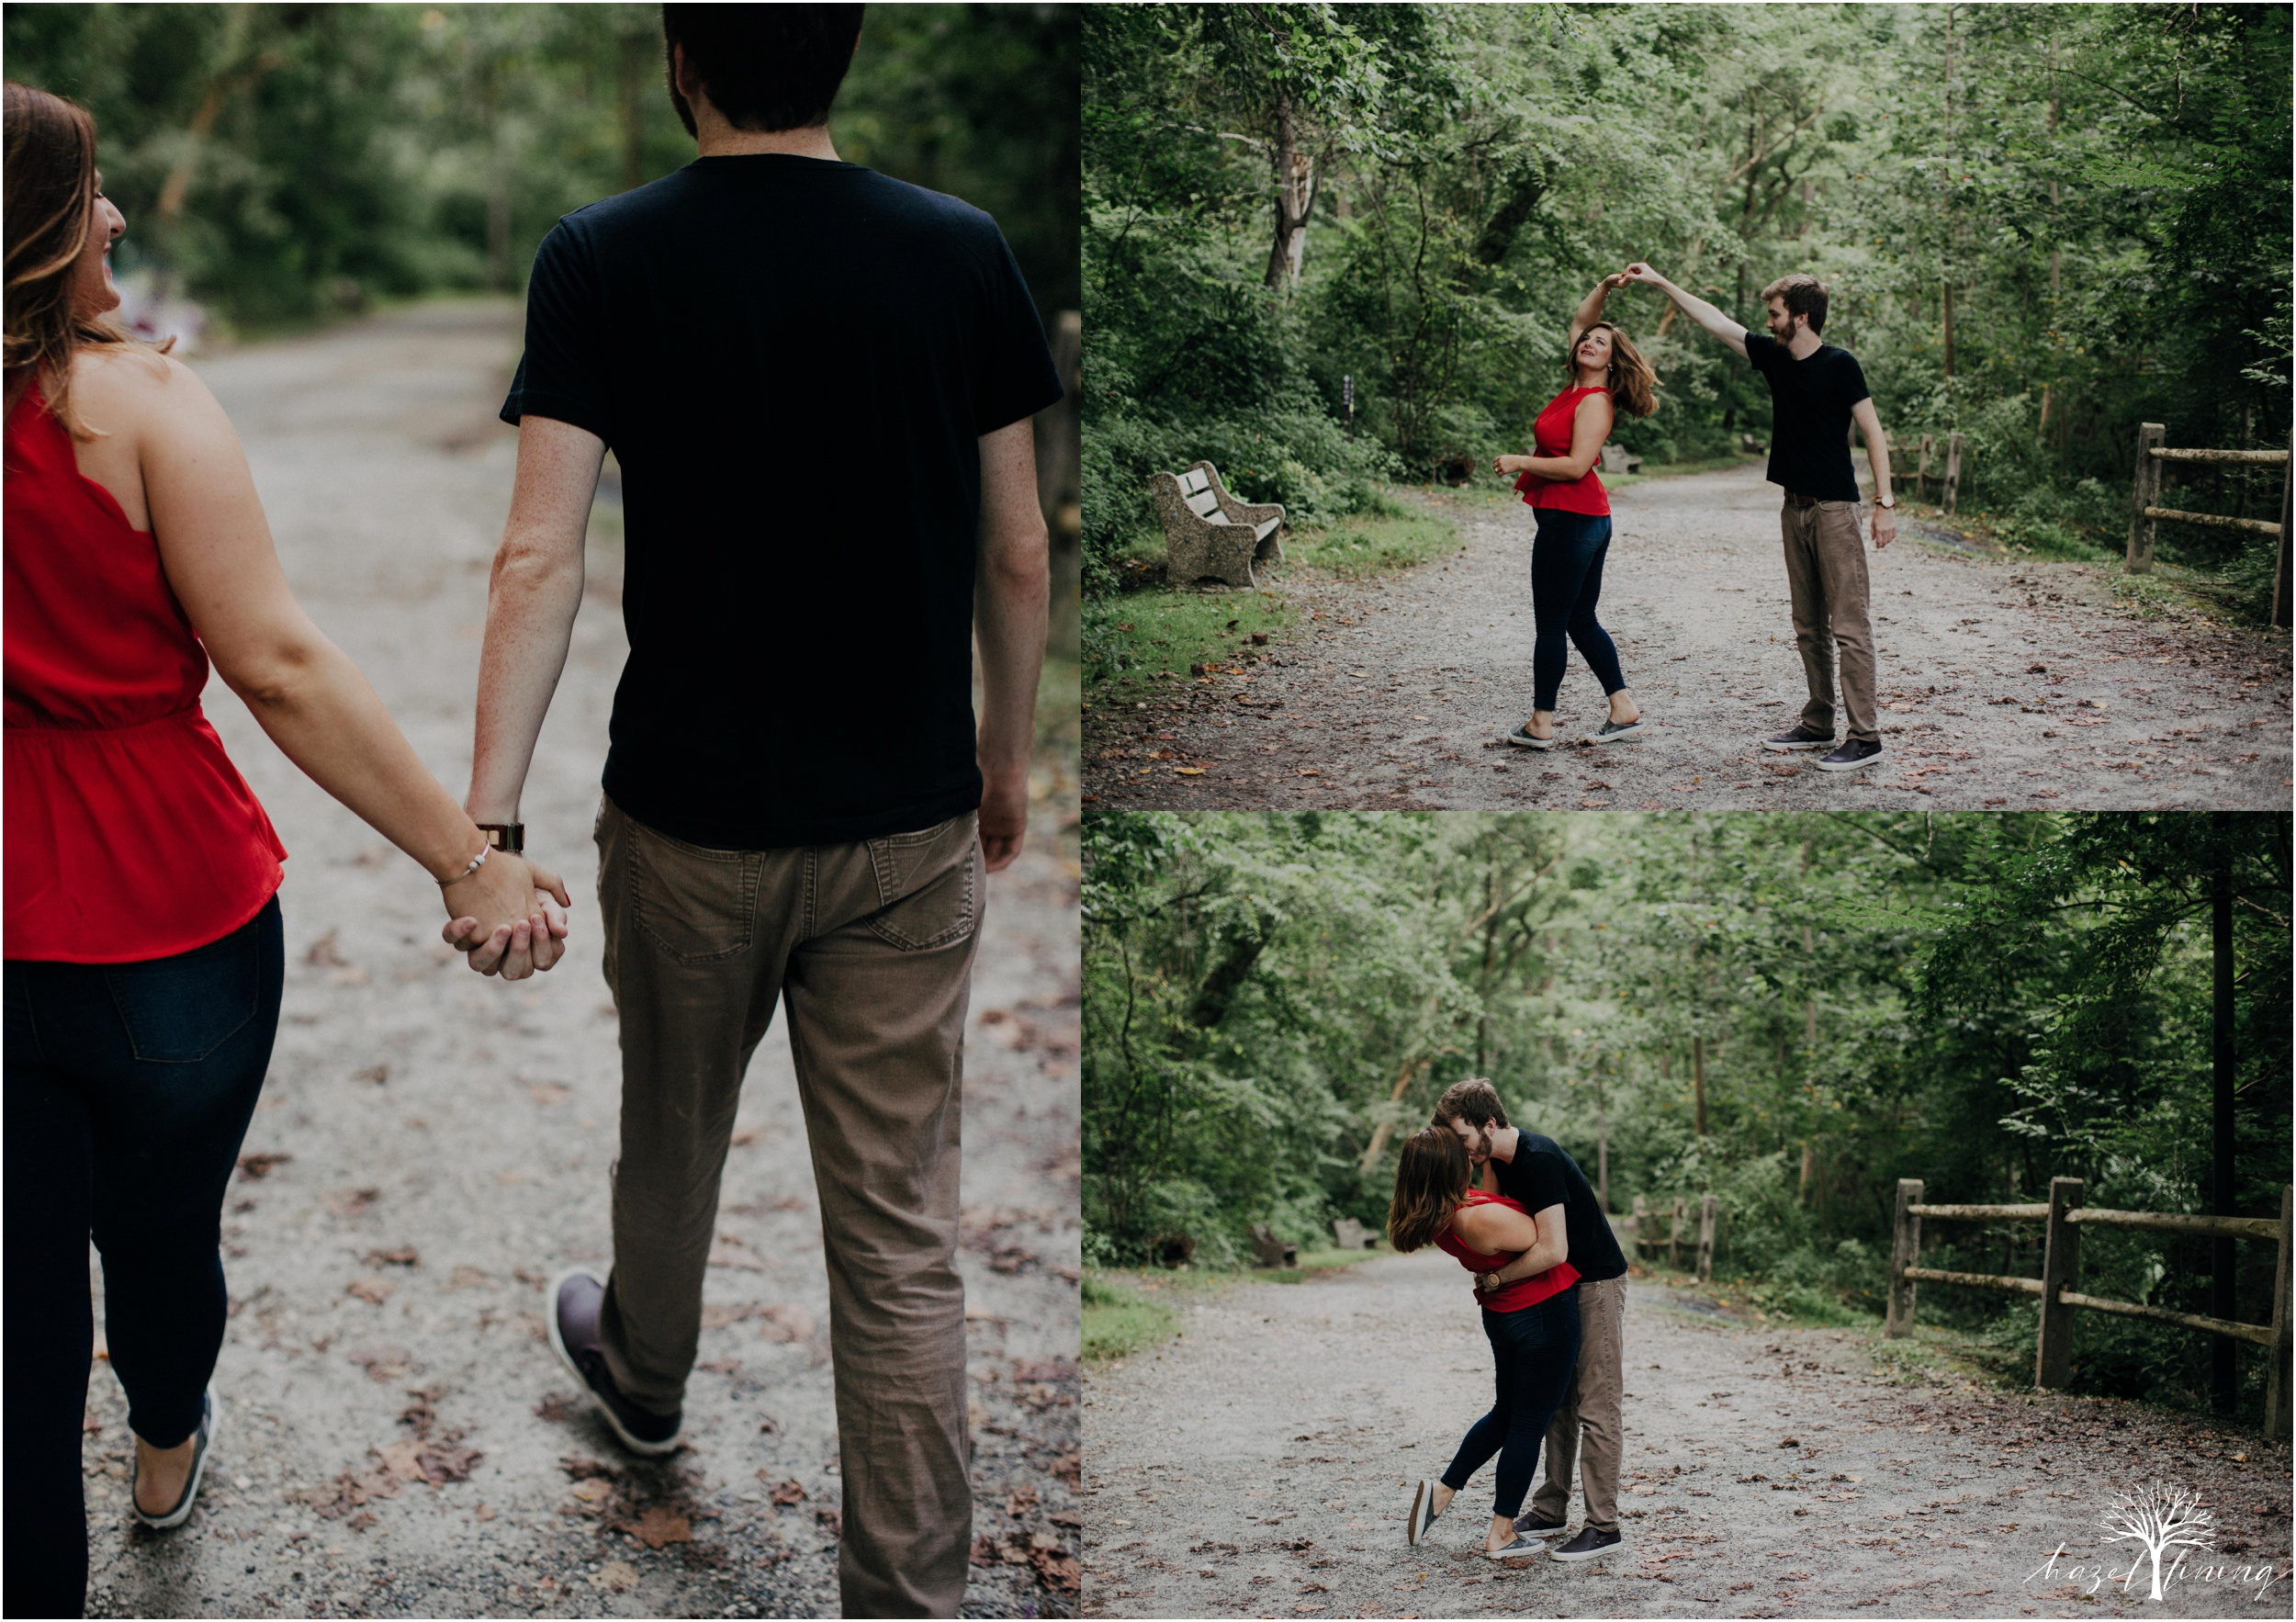 paige-kochey-chris-graham-valley-green-wissahickon-park-philadelphia-summer-engagement-session-hazel-lining-photography-destination-elopement-wedding-engagement-photography_0057.jpg